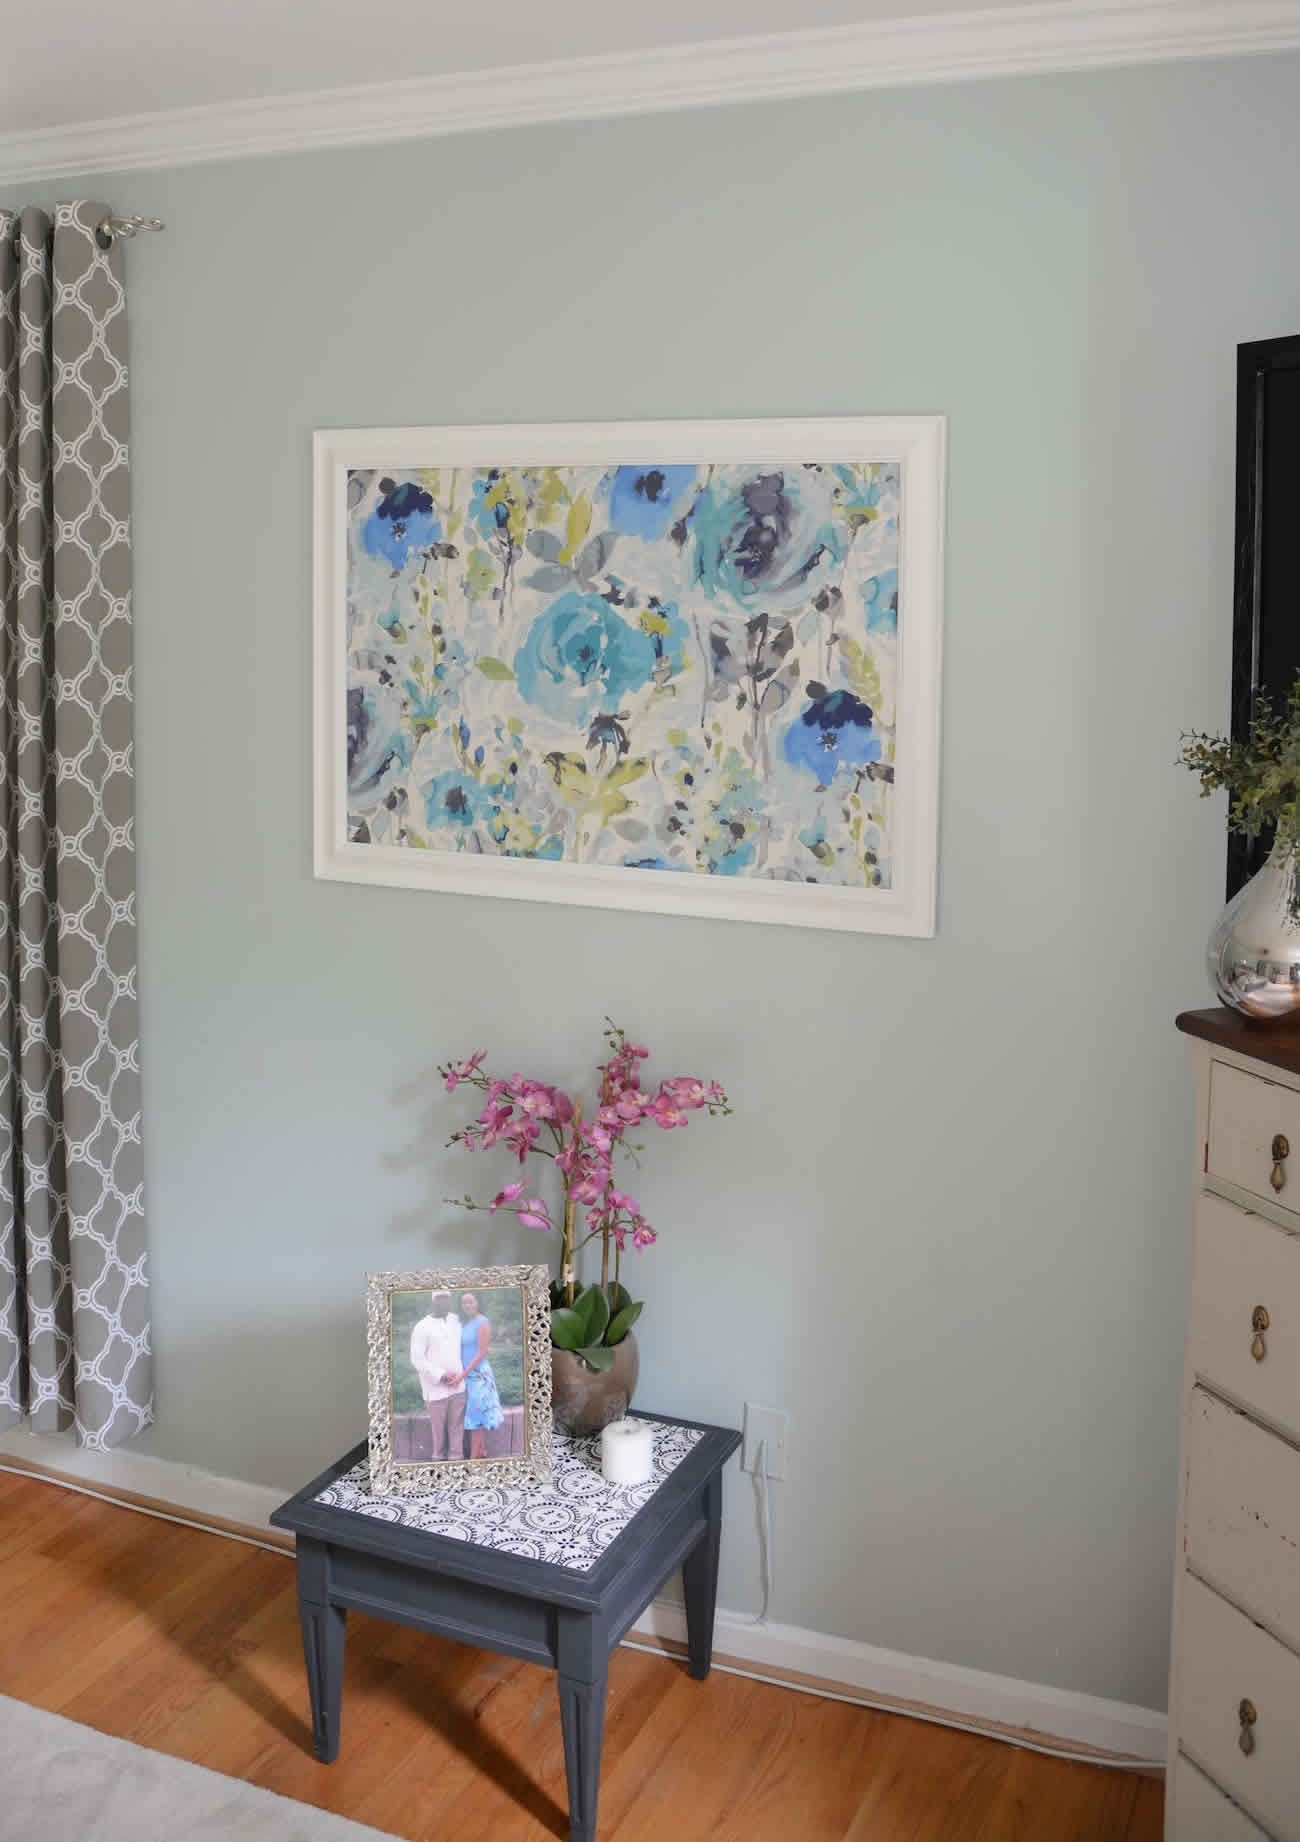 Framed Fabric Wall Art Makes A Fabulous Statement | Arrow Projects within Fabric Wall Art (Image 13 of 20)